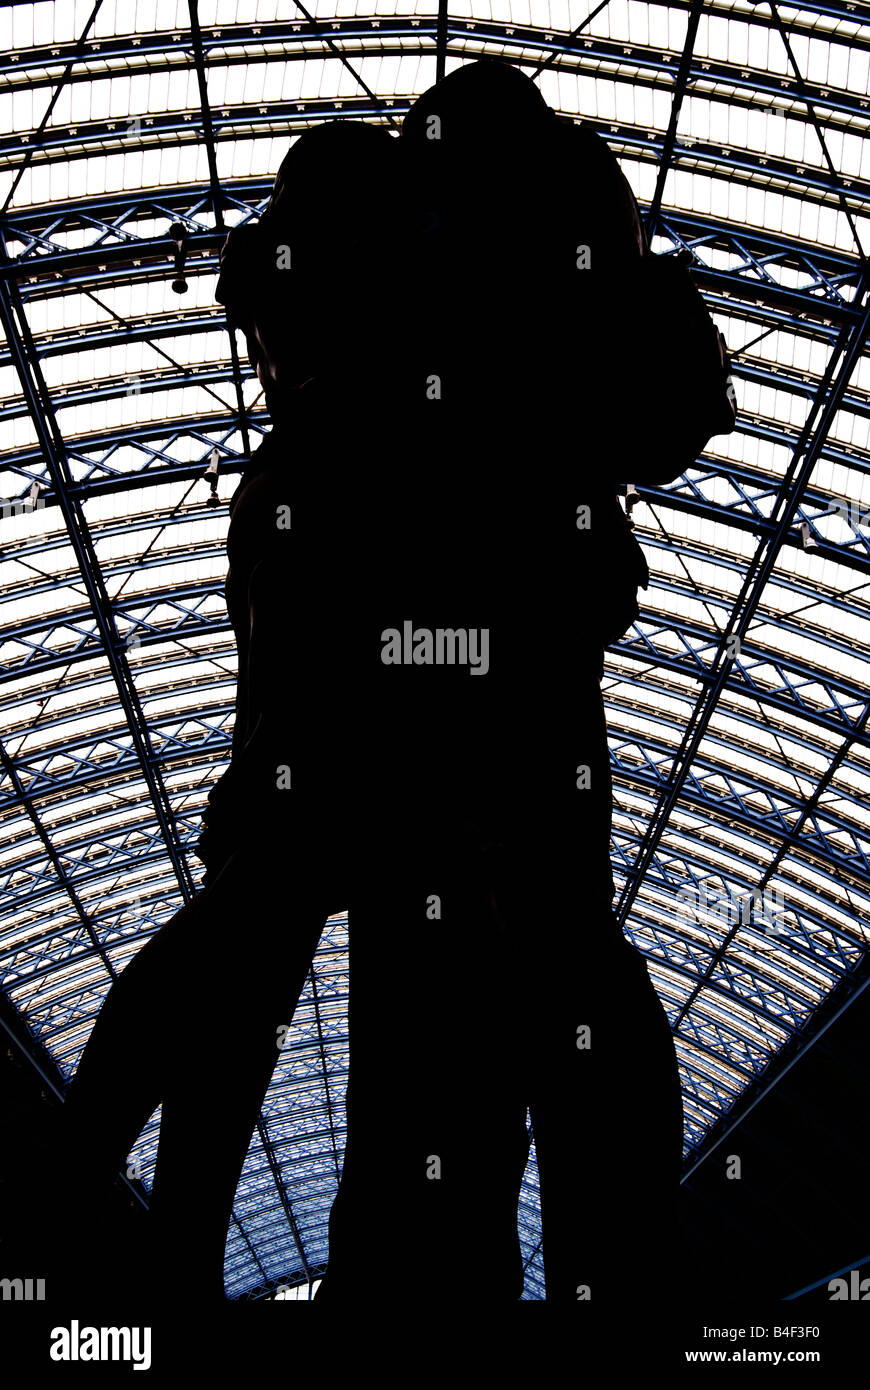 A statue of a kissing couple at St Pancras railway station, London, England, UK - Stock Image